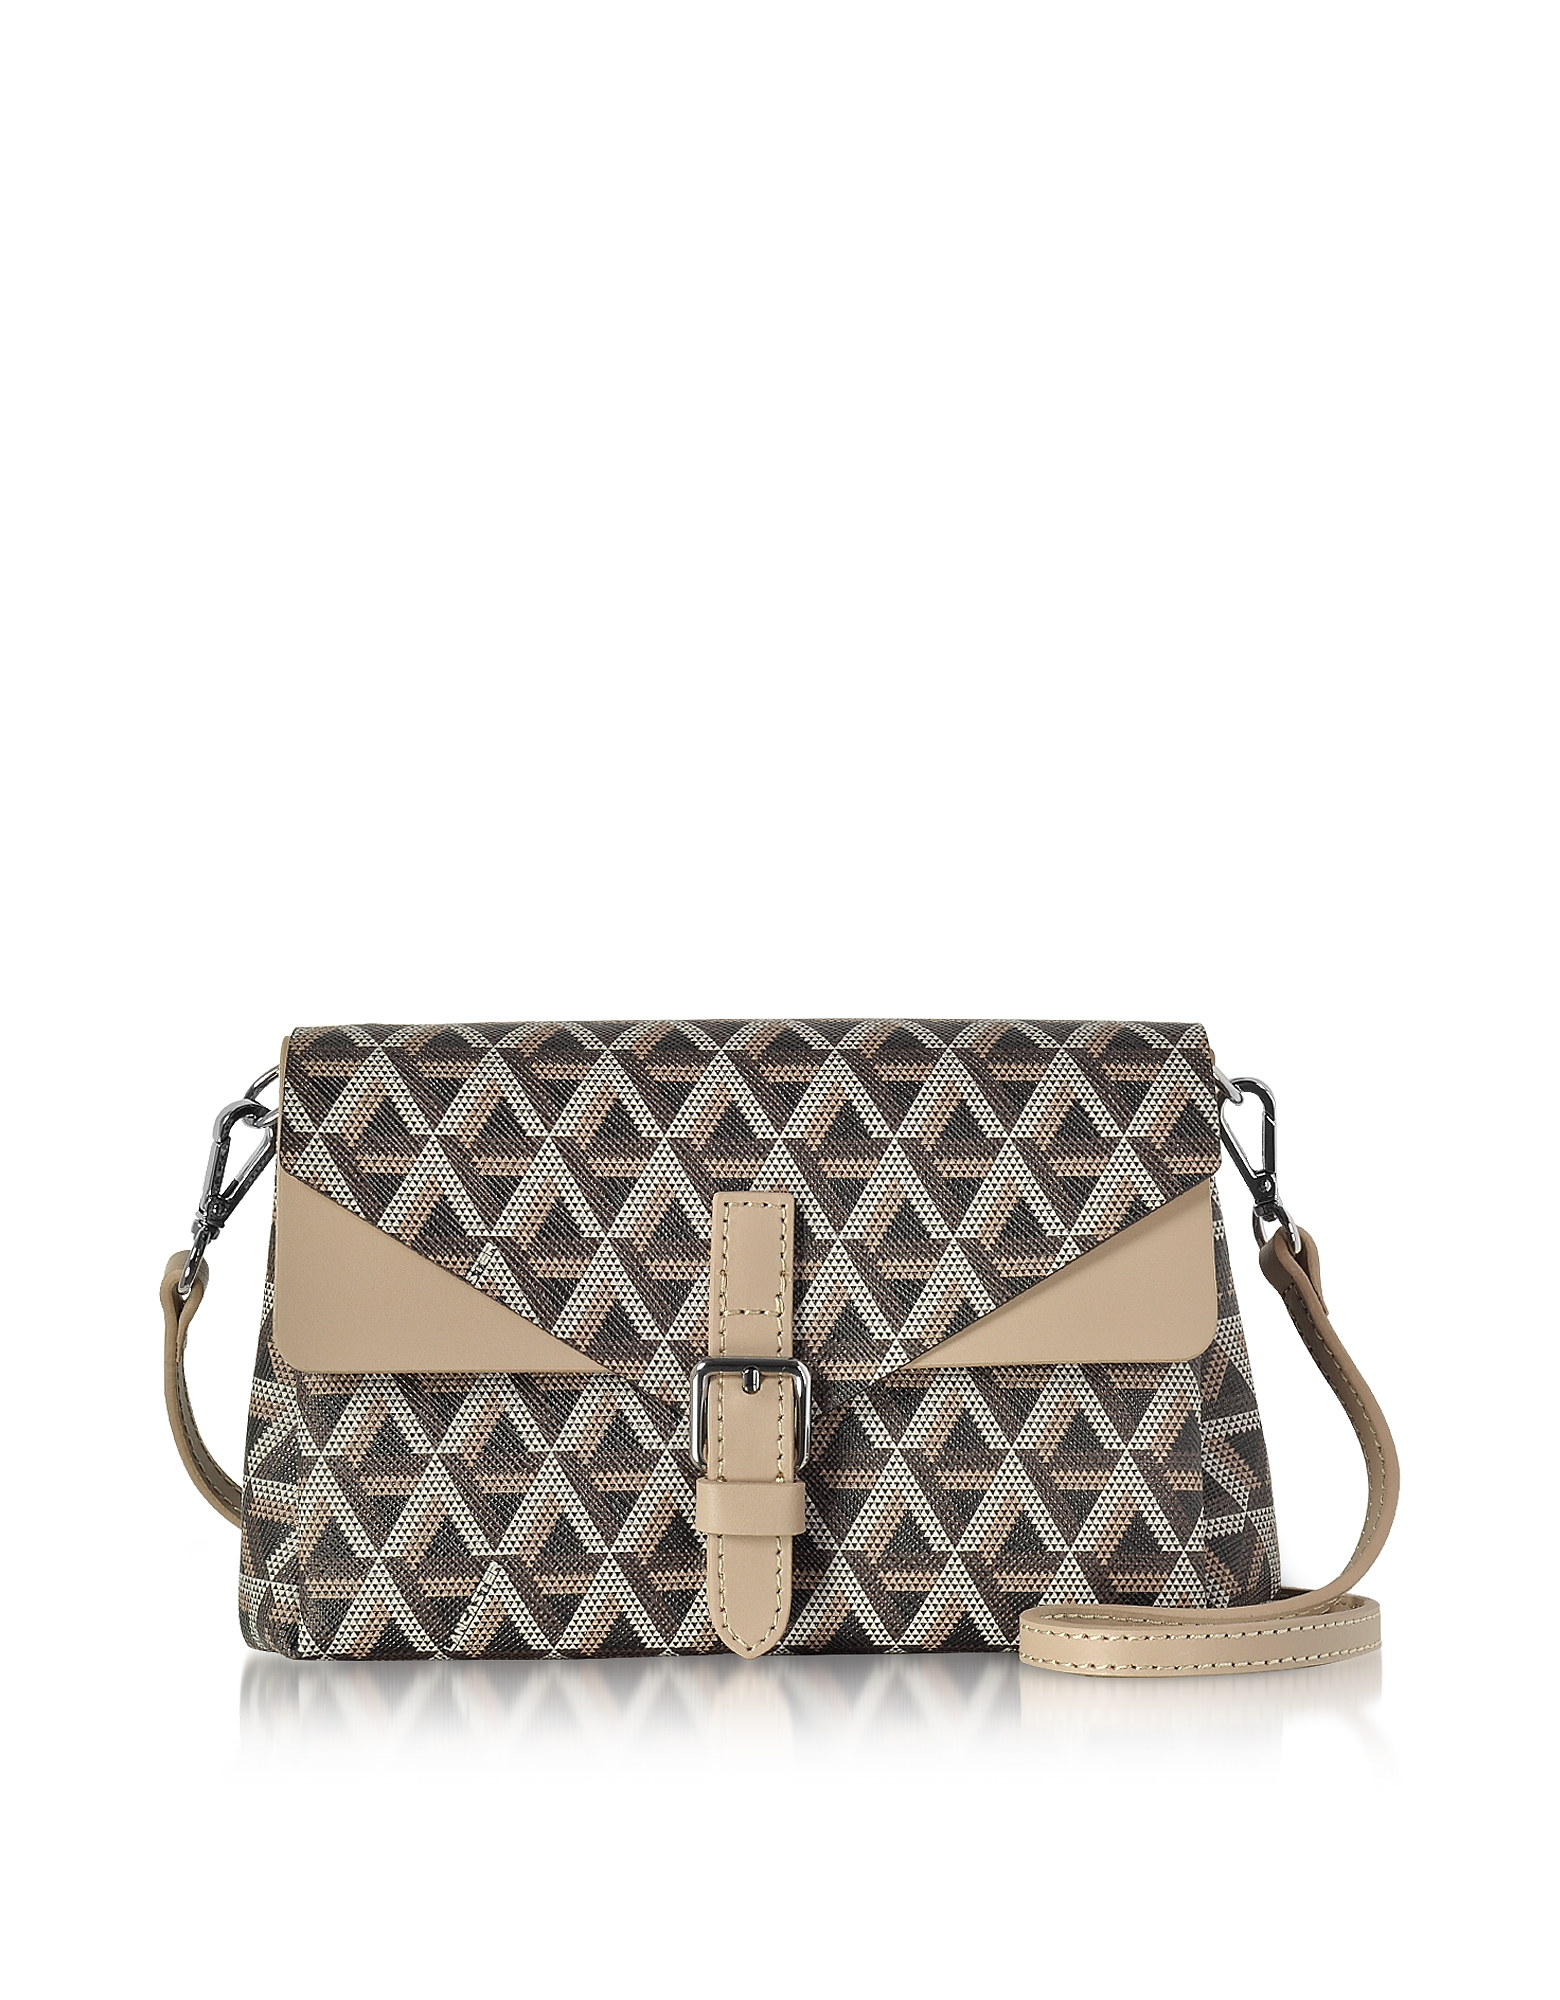 Lancaster Paris Handbags, Ikon Brown & Nude Coated Canvas and Leather Mini Clutch